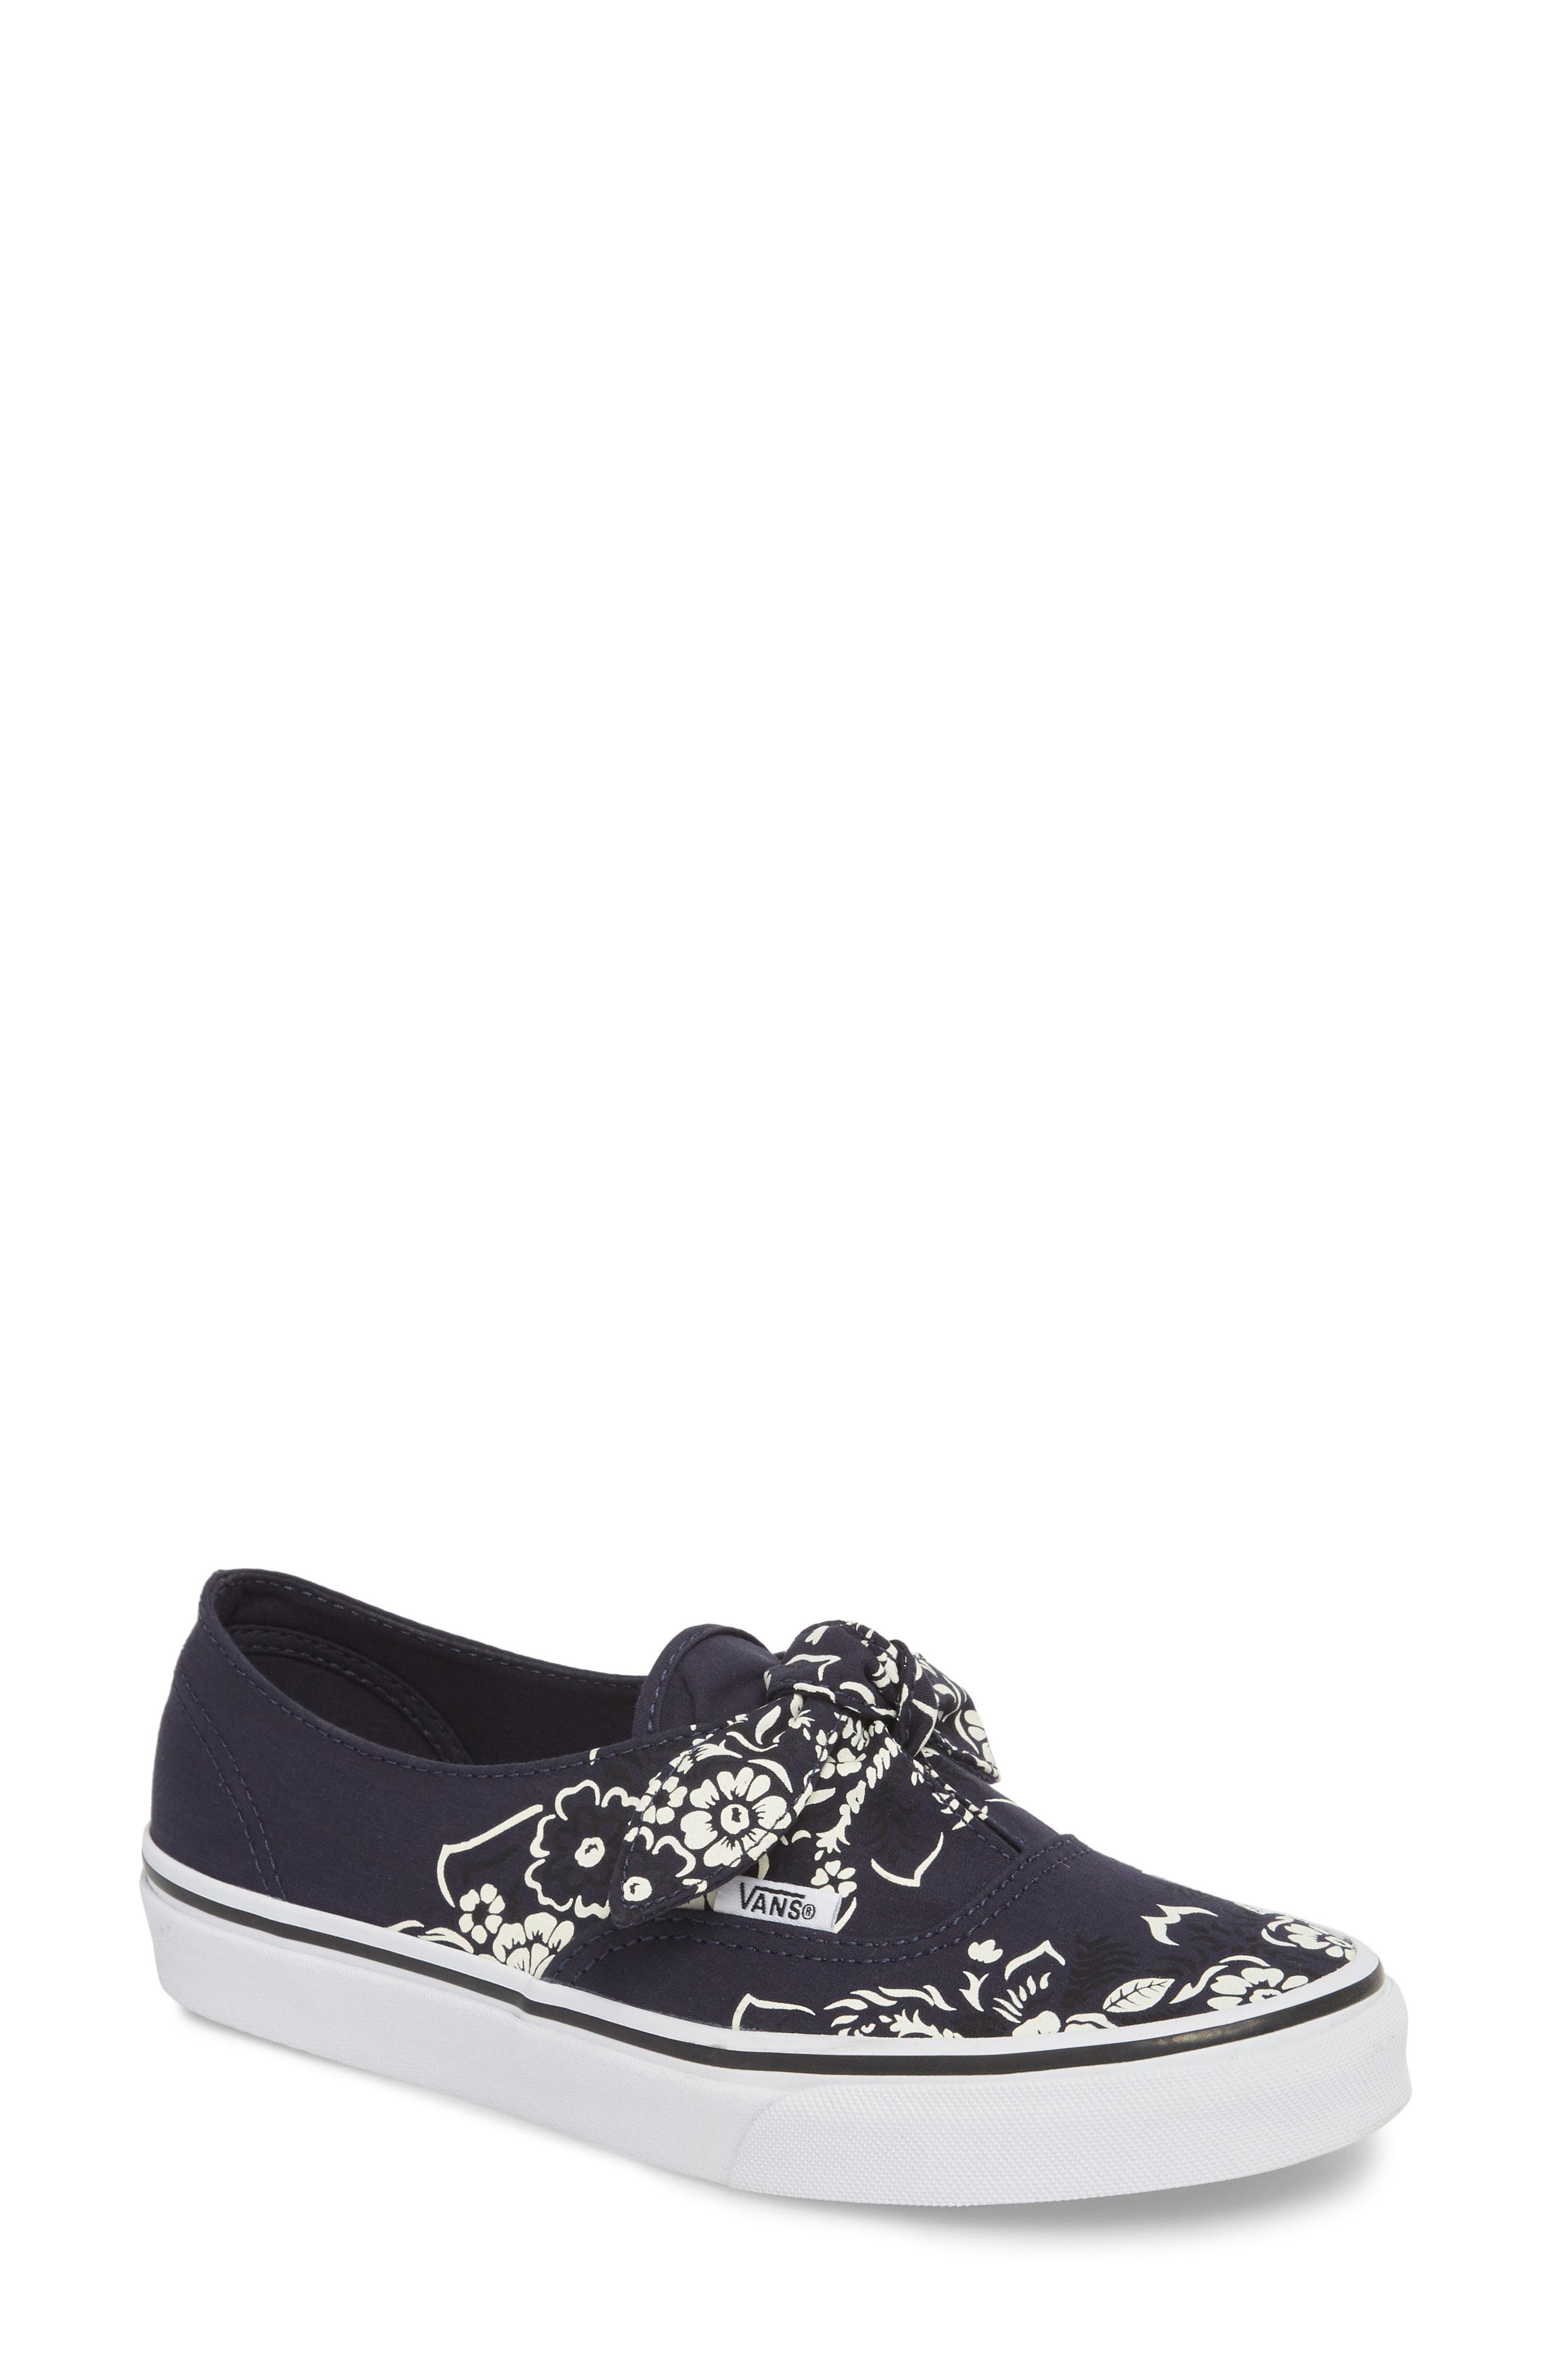 Lyst - Vans Ua Authentic Knotted Floral Bandana Slip-on Sneaker fd54dd5e158f2